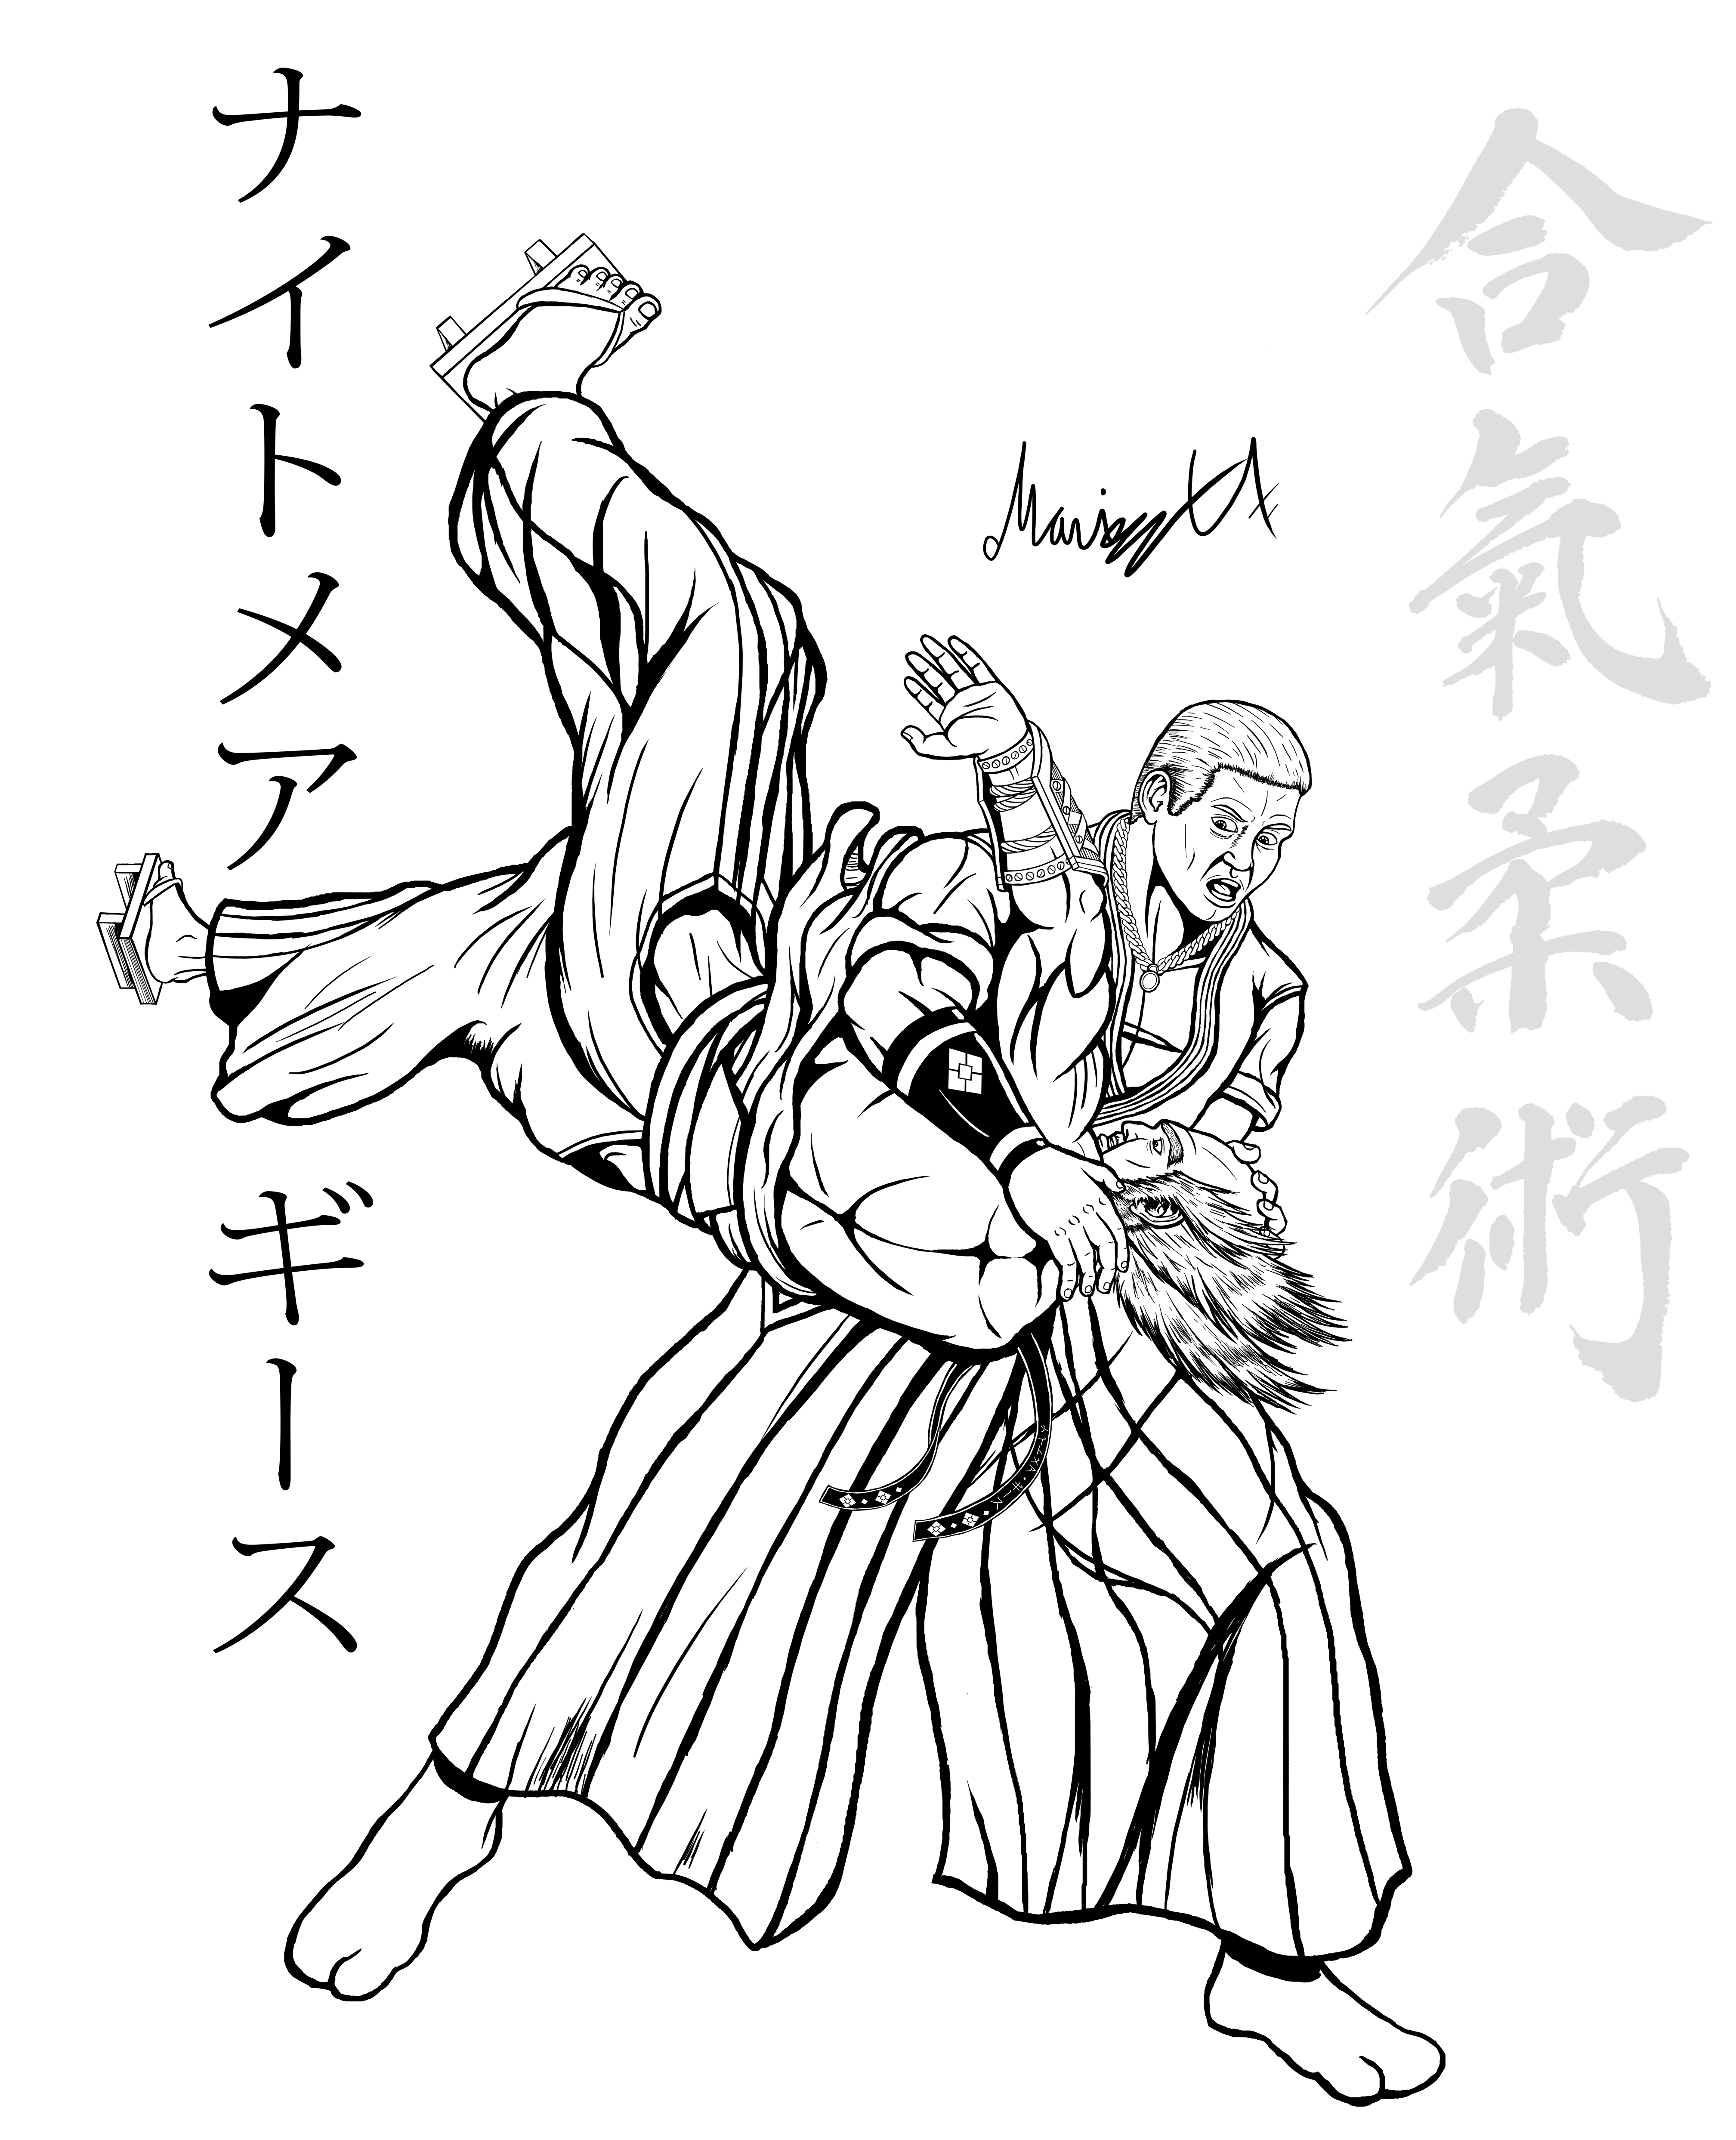 Geese Howard doing Tenchi-nage on Heihachi inked